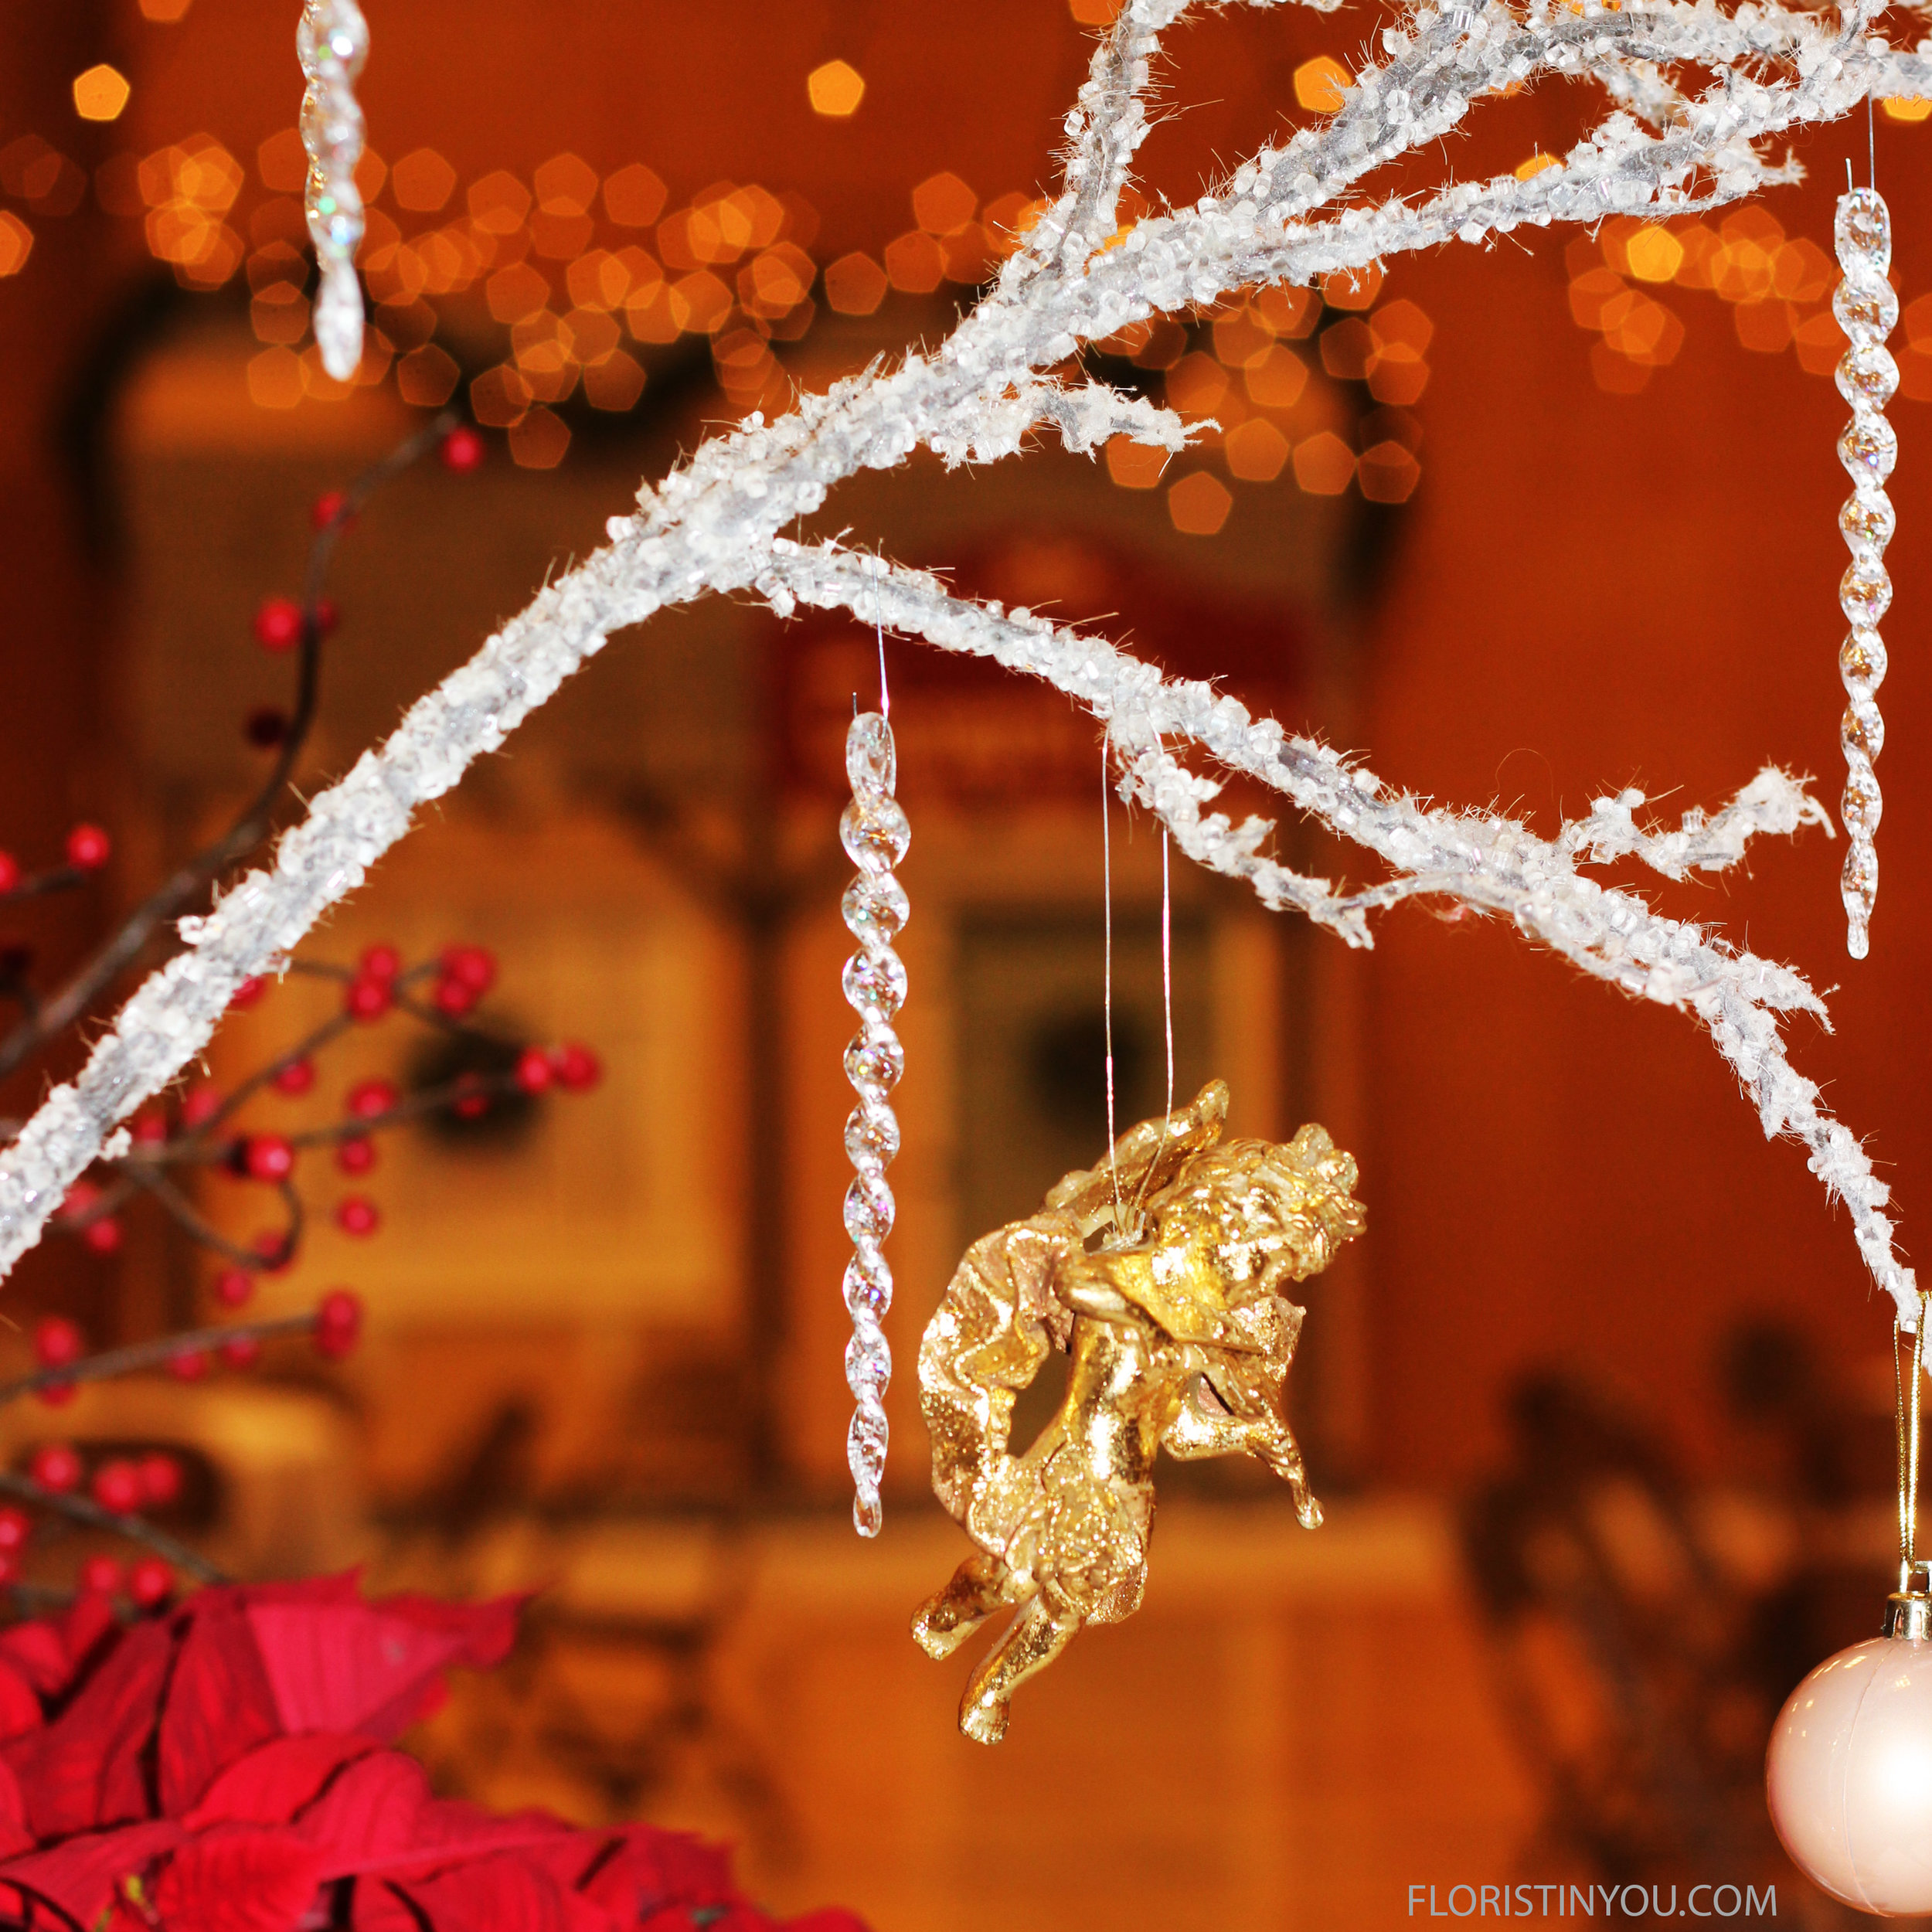 You can hand gilded angels, icicles, small pearl Christmas balls from them.